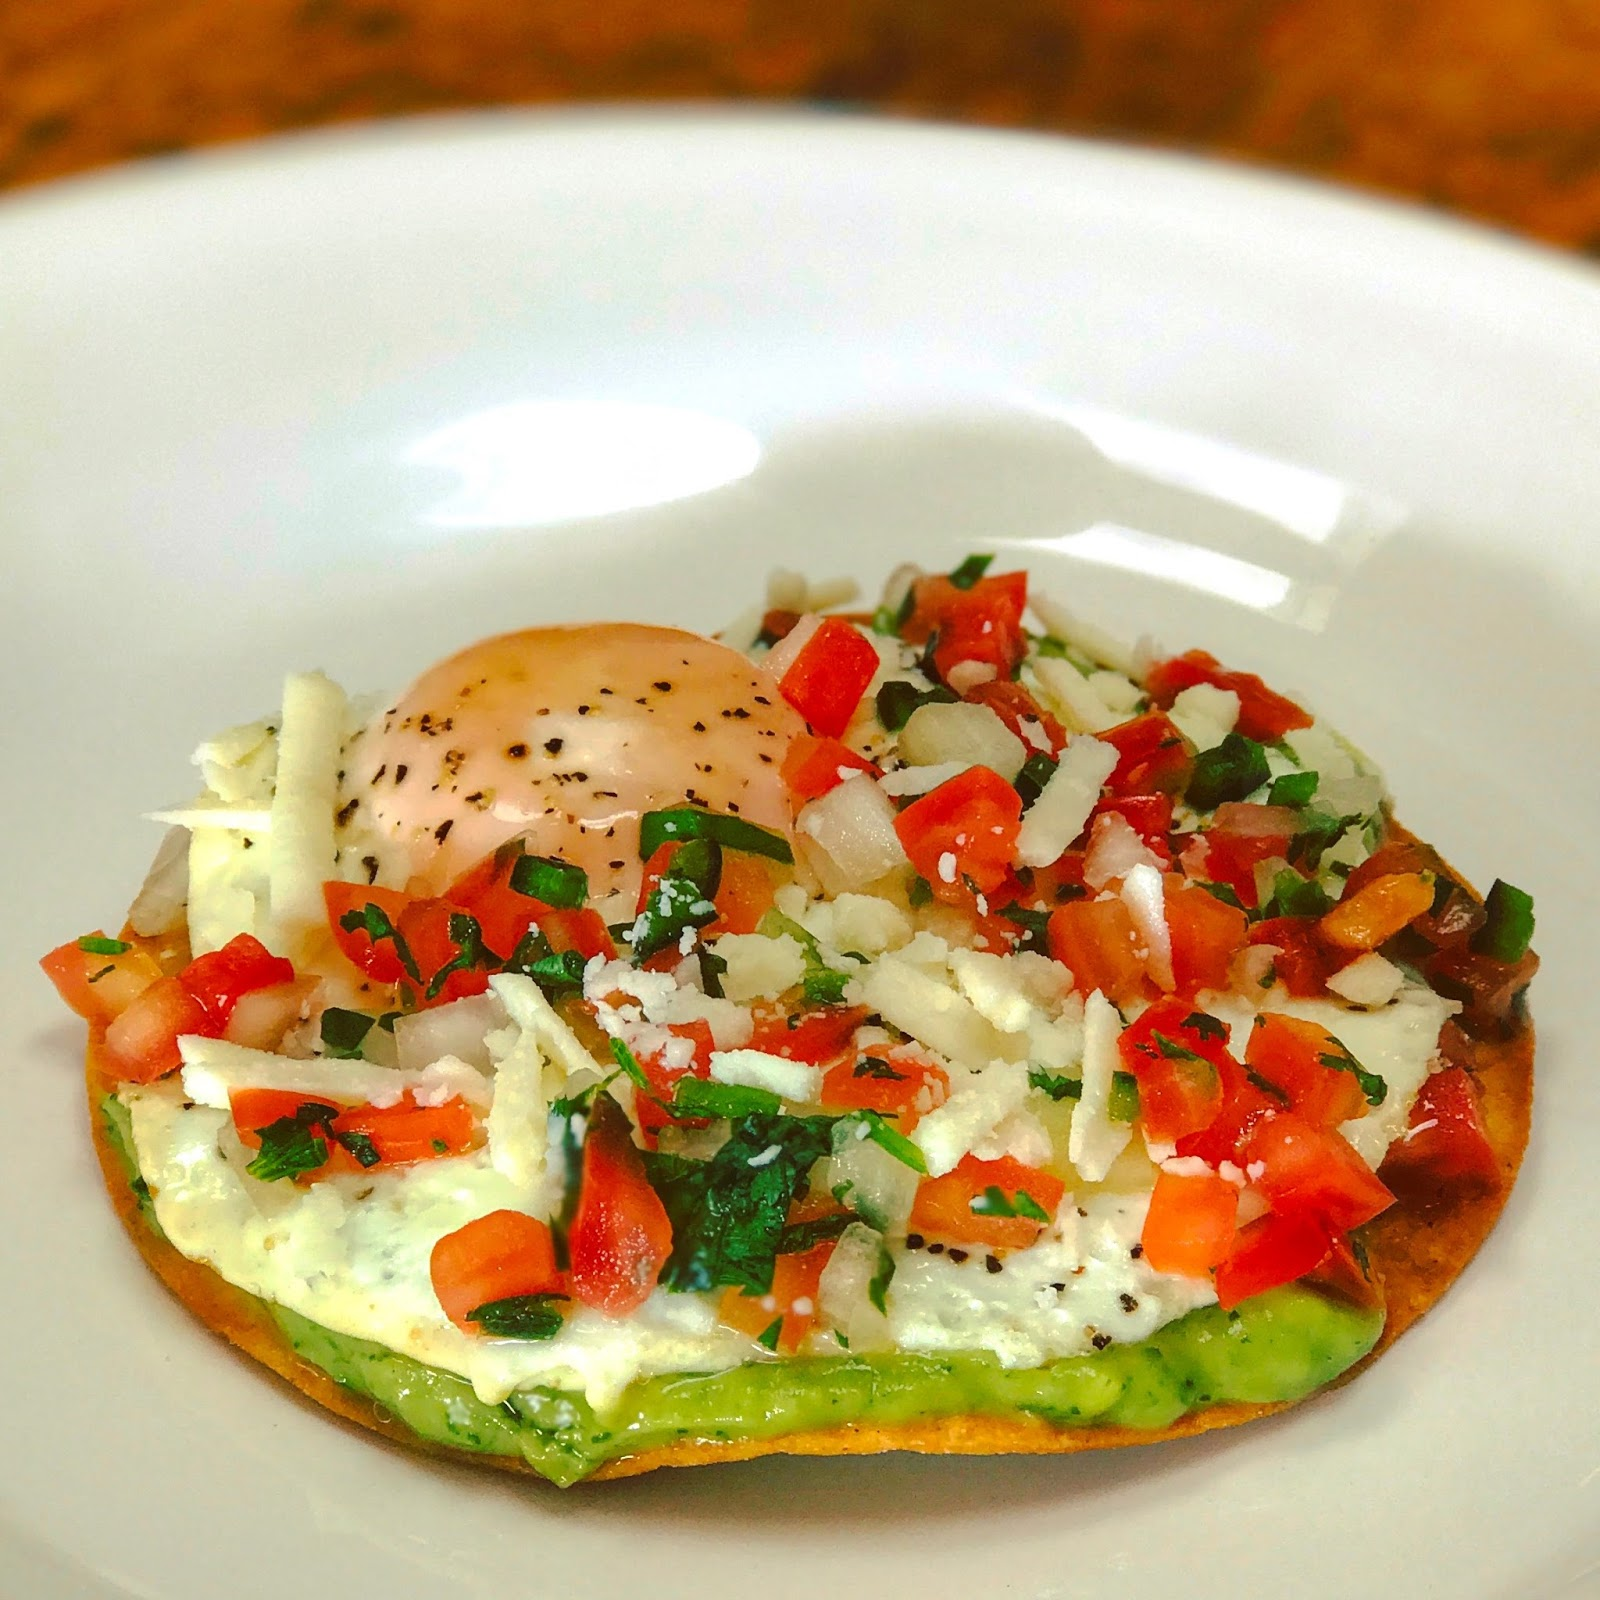 Transforming Leftovers into Breakfast….Fried Egg Tostada!